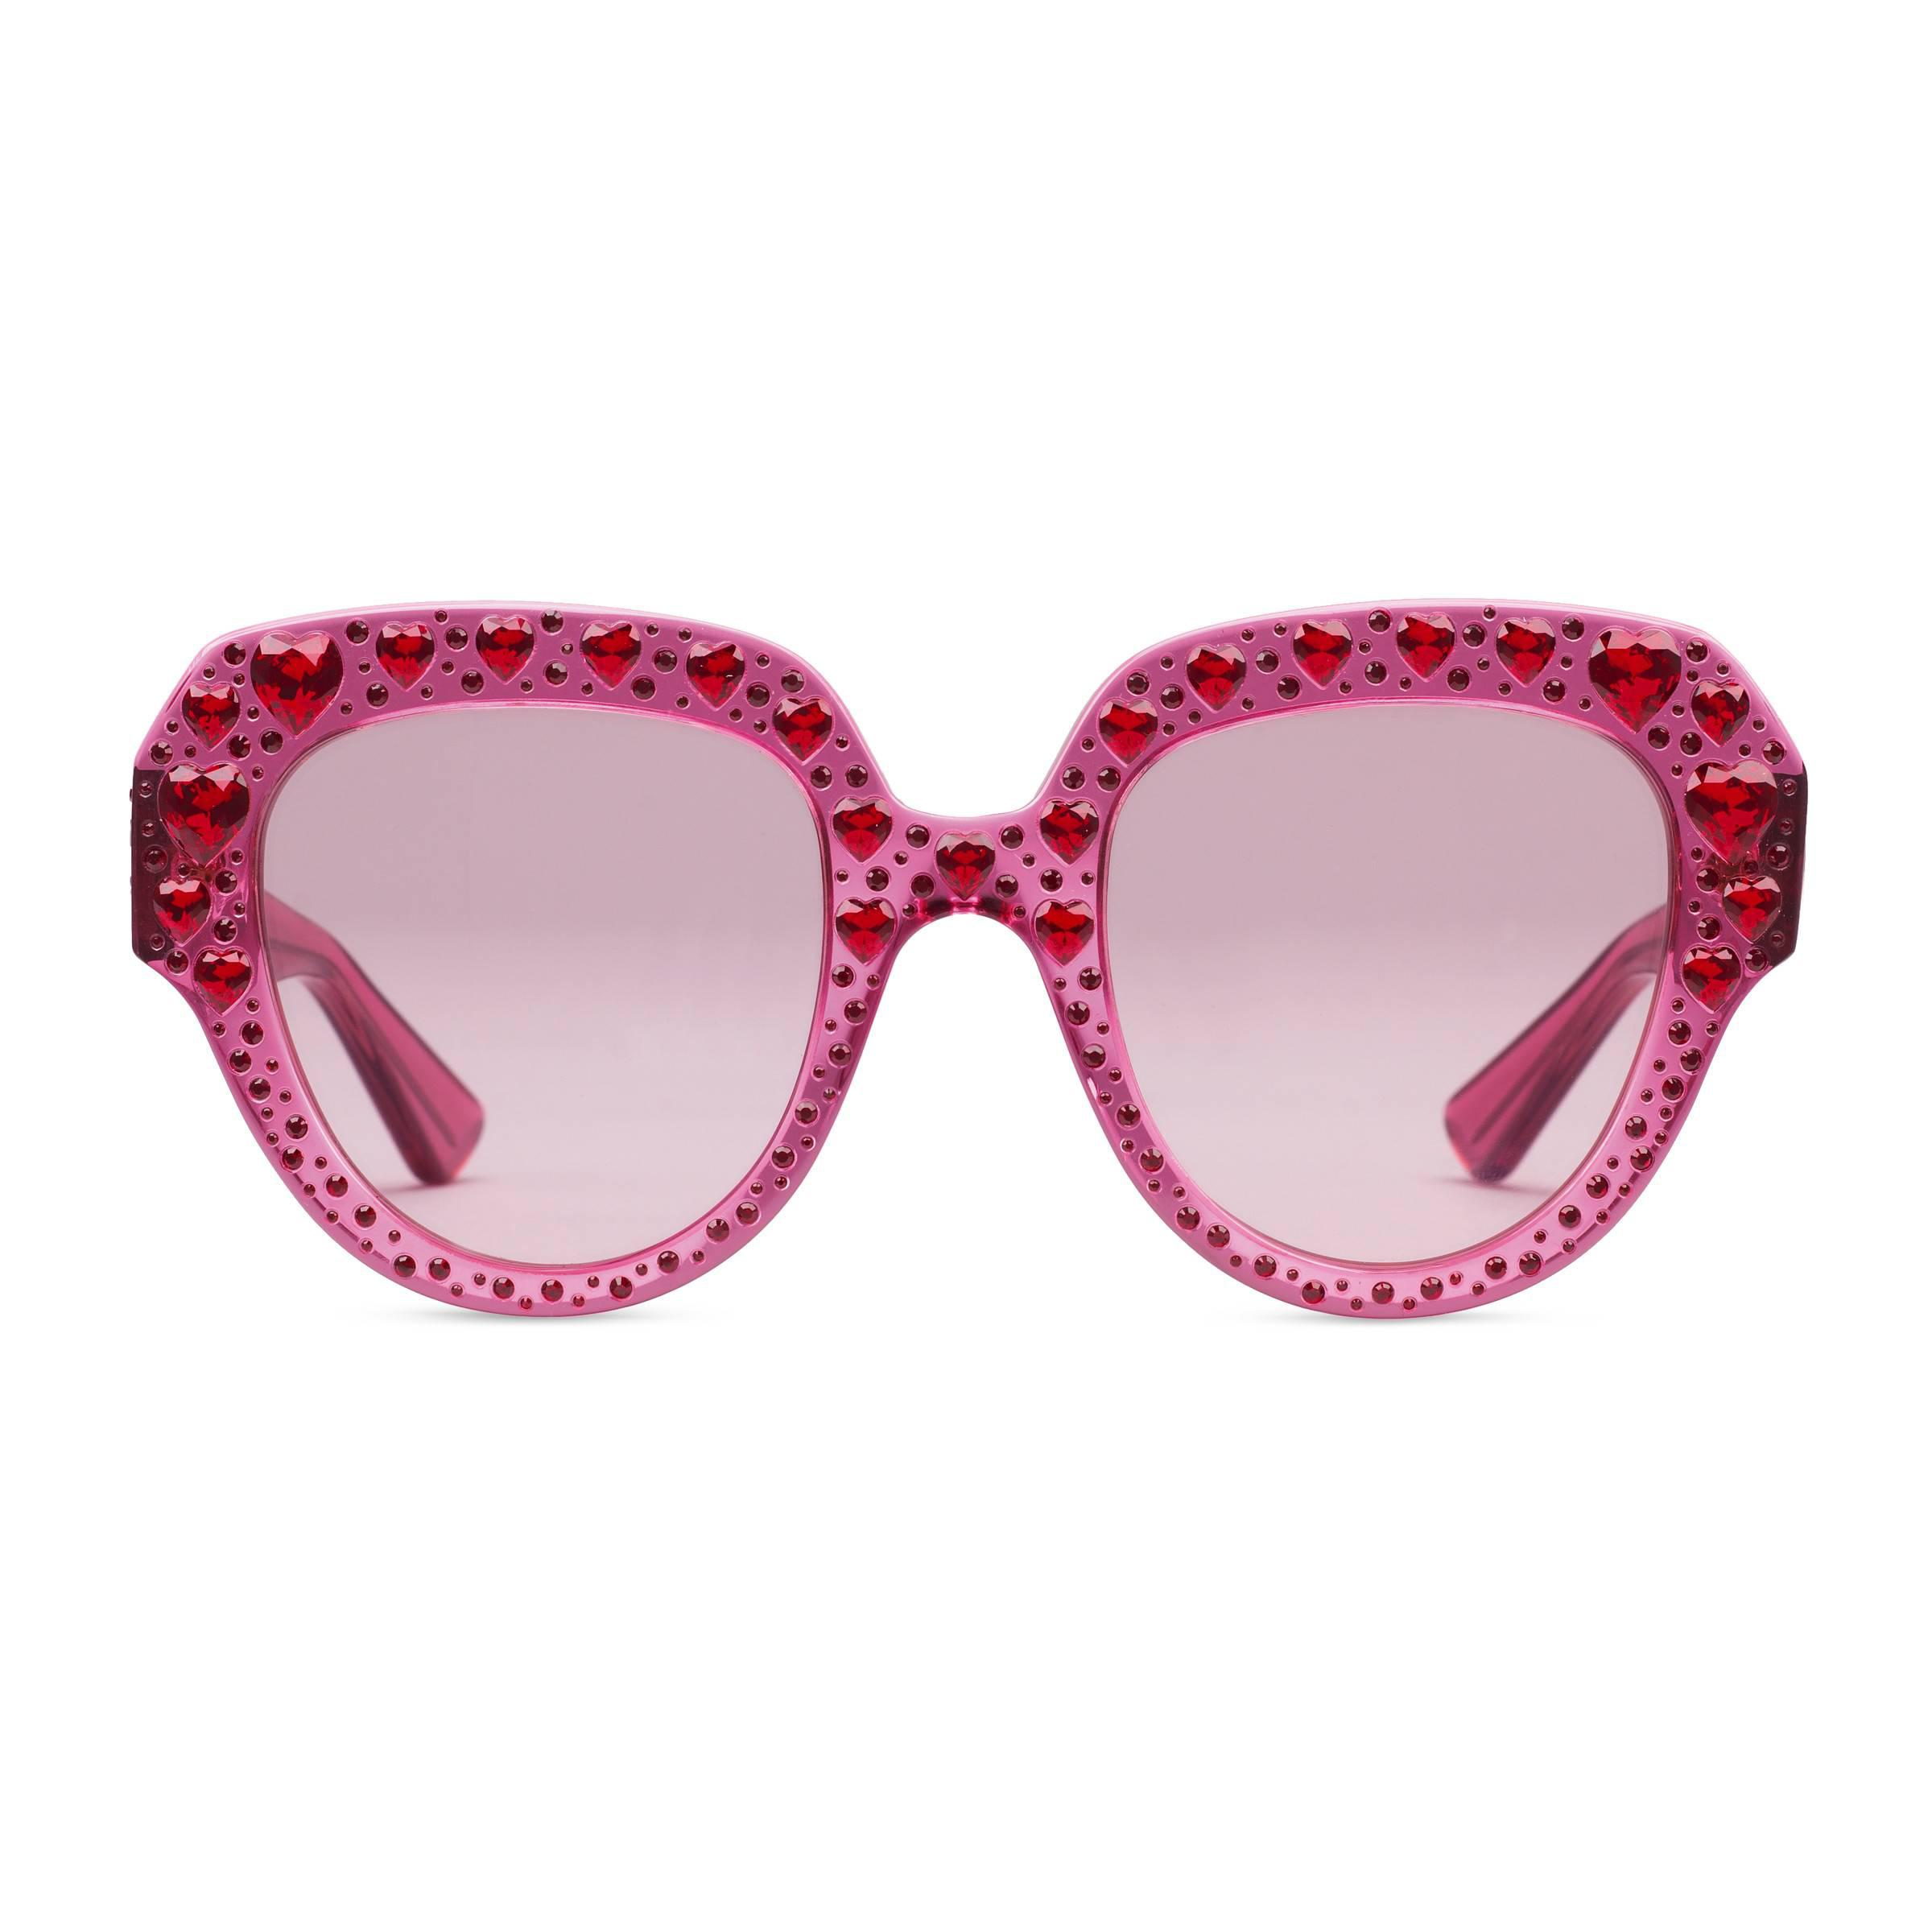 125578c45b Gucci - Multicolor Square-frame Acetate Sunglasses With Crystals - Lyst.  View fullscreen